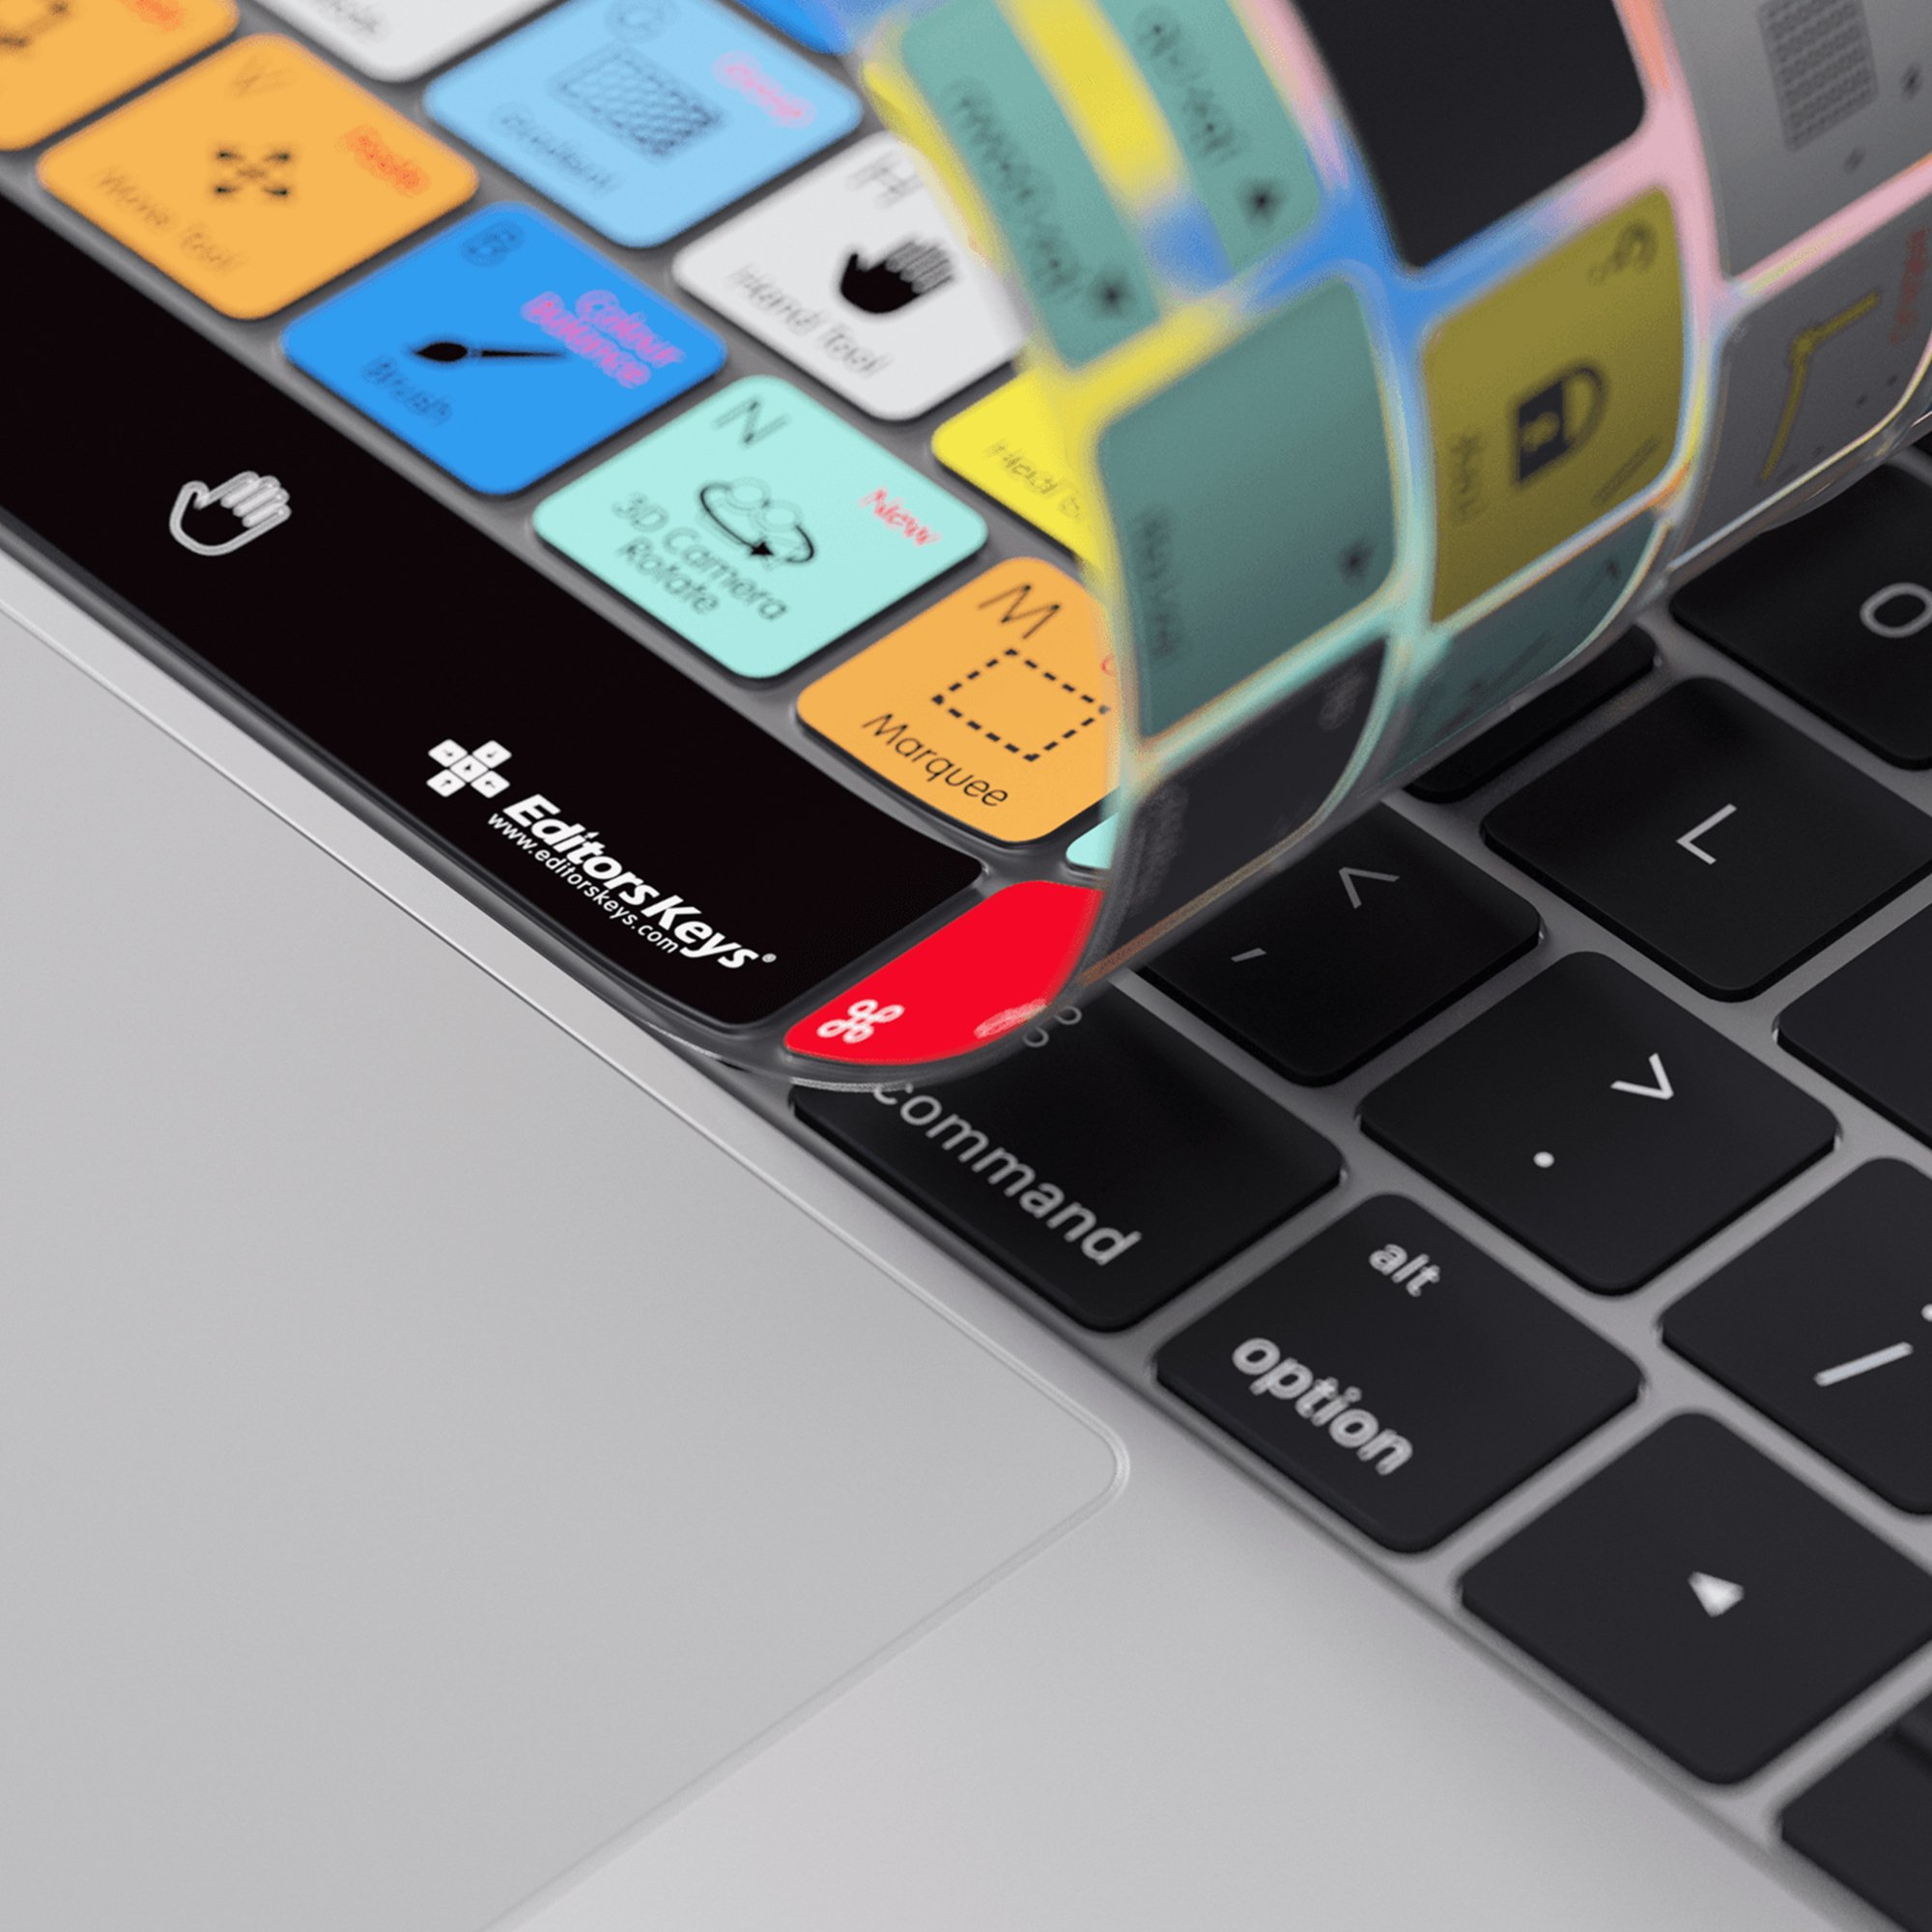 Adobe Photoshop Keyboard Cover for MacBook Pro Touch Bar - Protection and Shortcut Skin. 13'' | 15'' by Editors Keys, Adobe (Image #3)